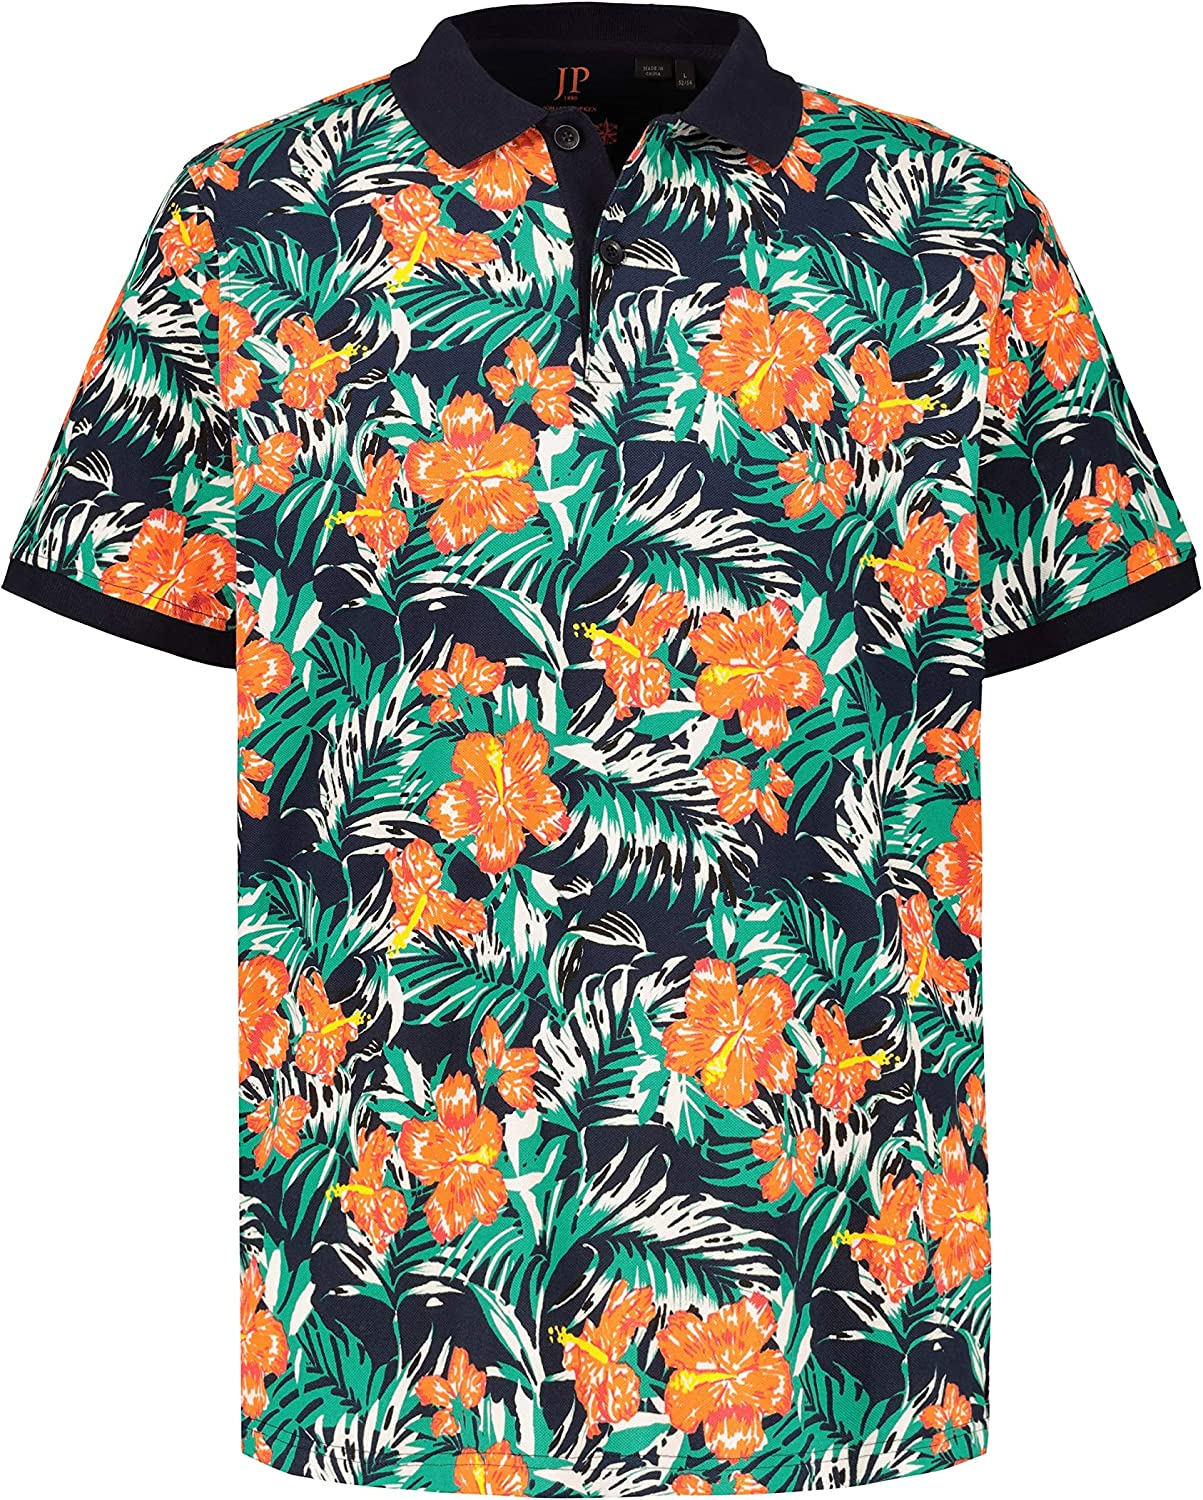 JP 1880 Mens Big /& Tall Tropical Print Pique Polo Shirt 720054